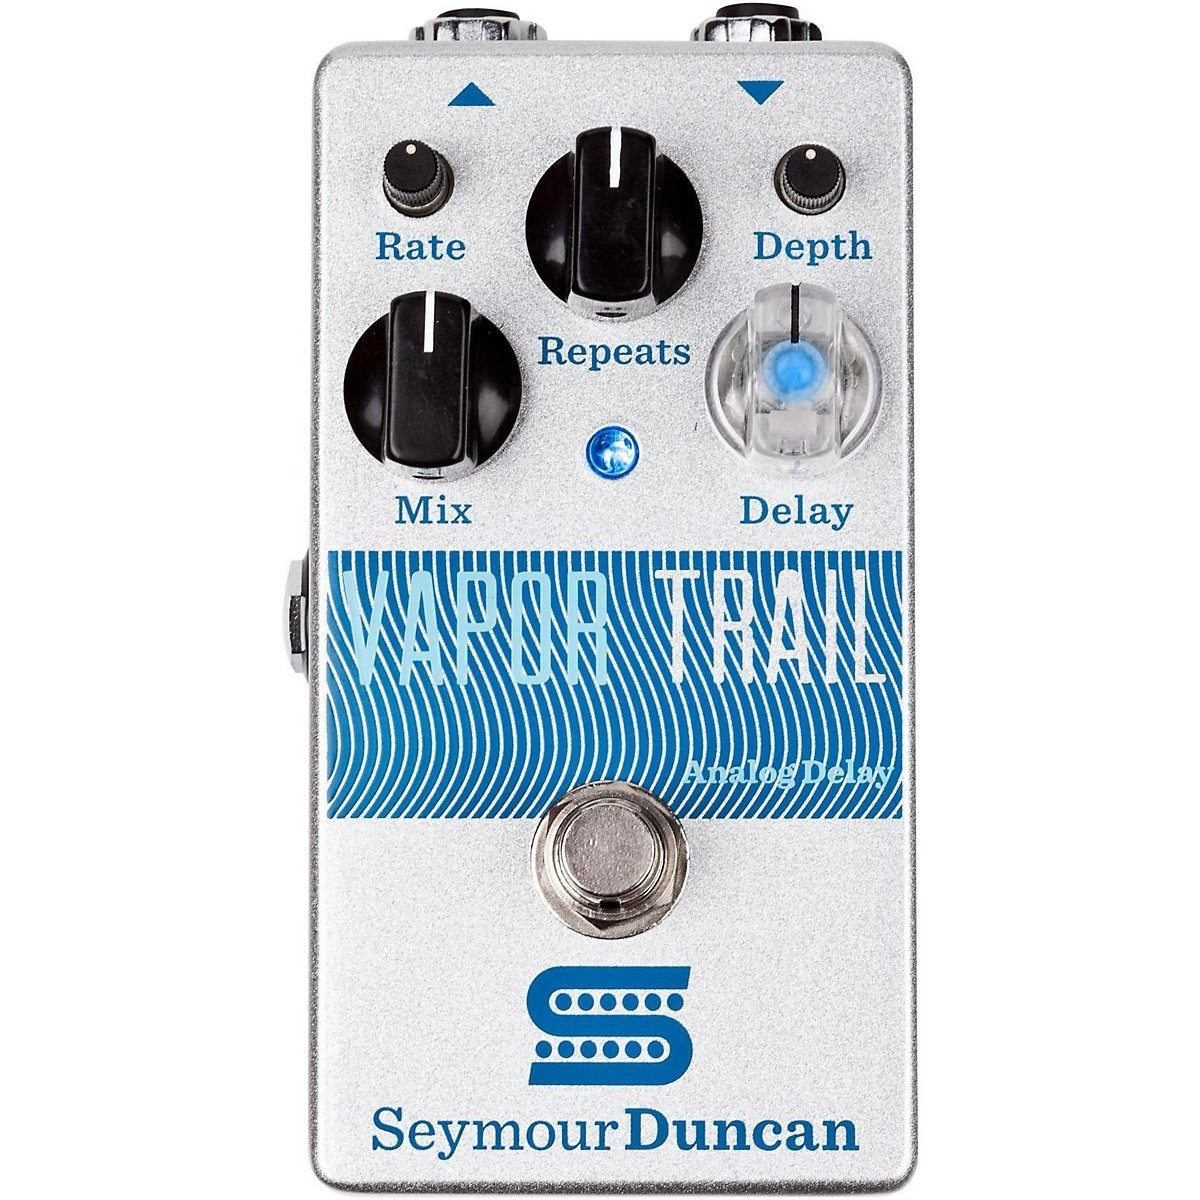 Seymour Duncan Vapor Trail Analog Delay Pedal at Gear4music.com